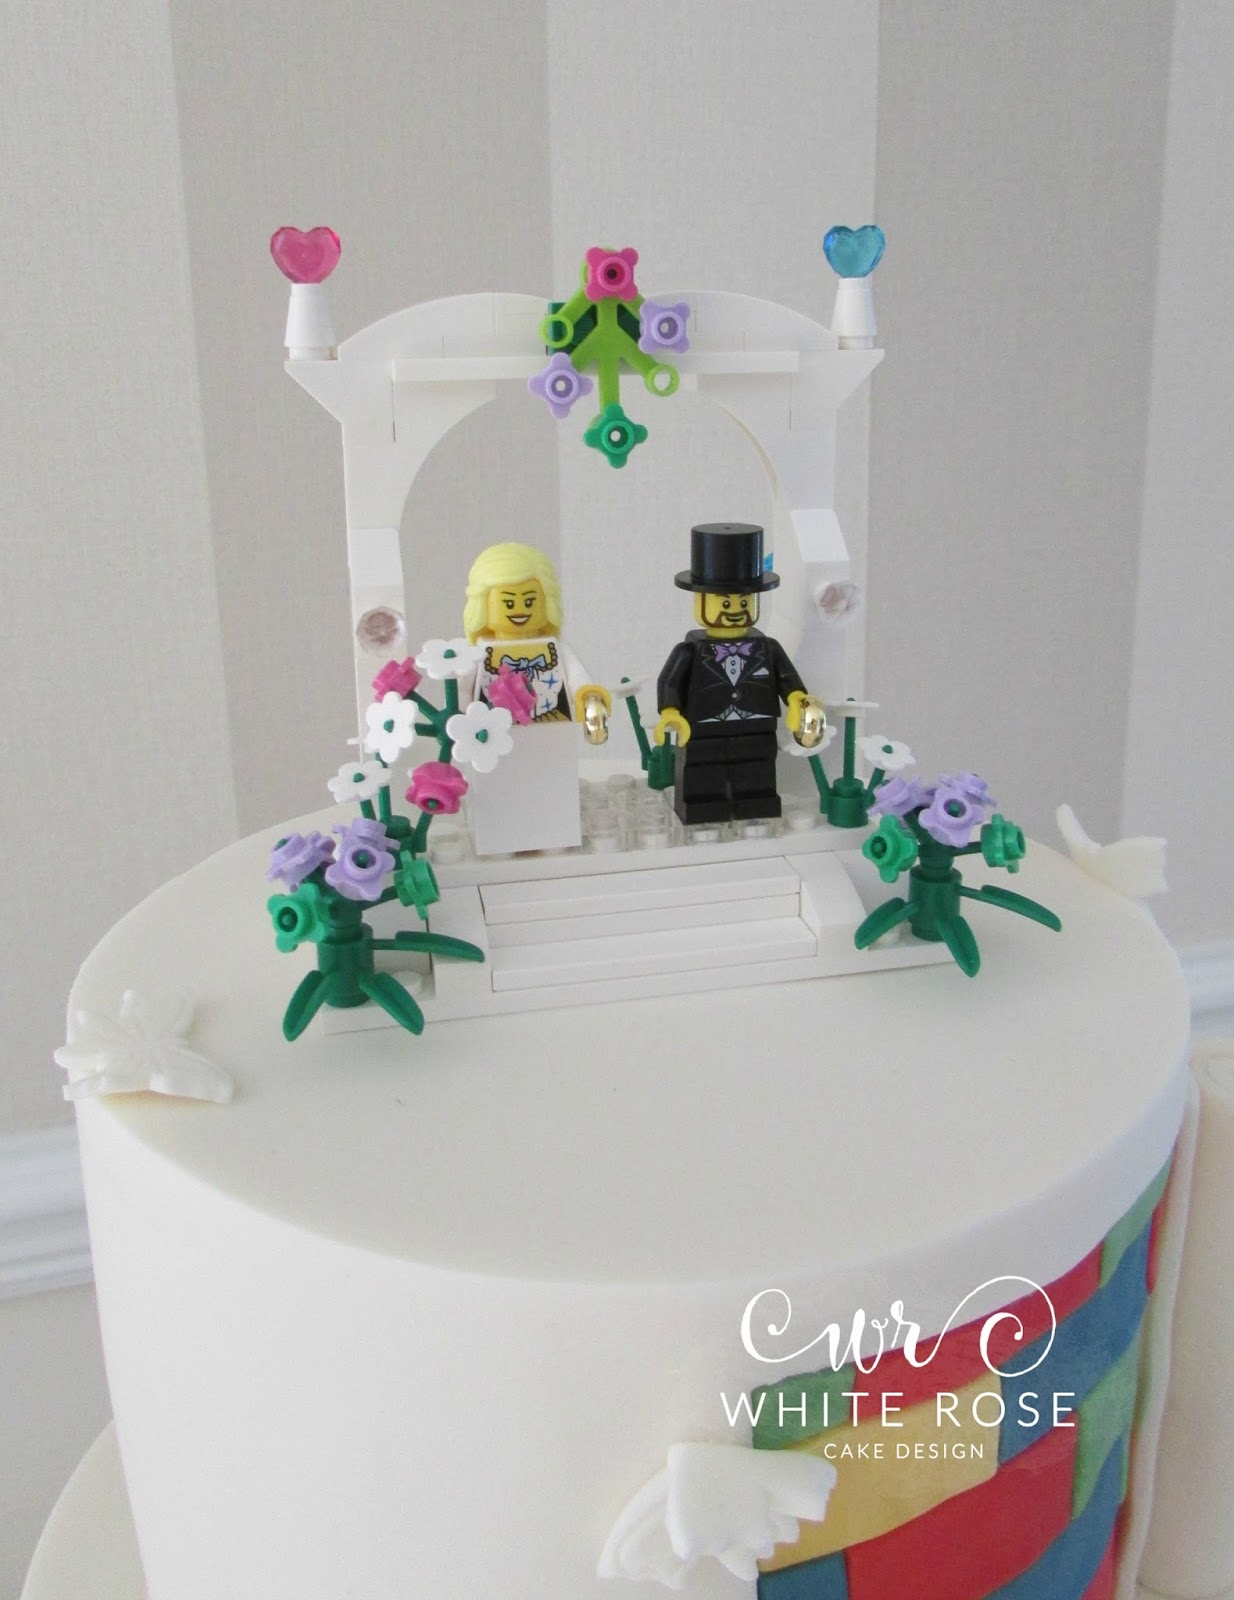 Wedding Cakes Huddersfield Archives - Page 4 of 4 - White Rose Cake ...